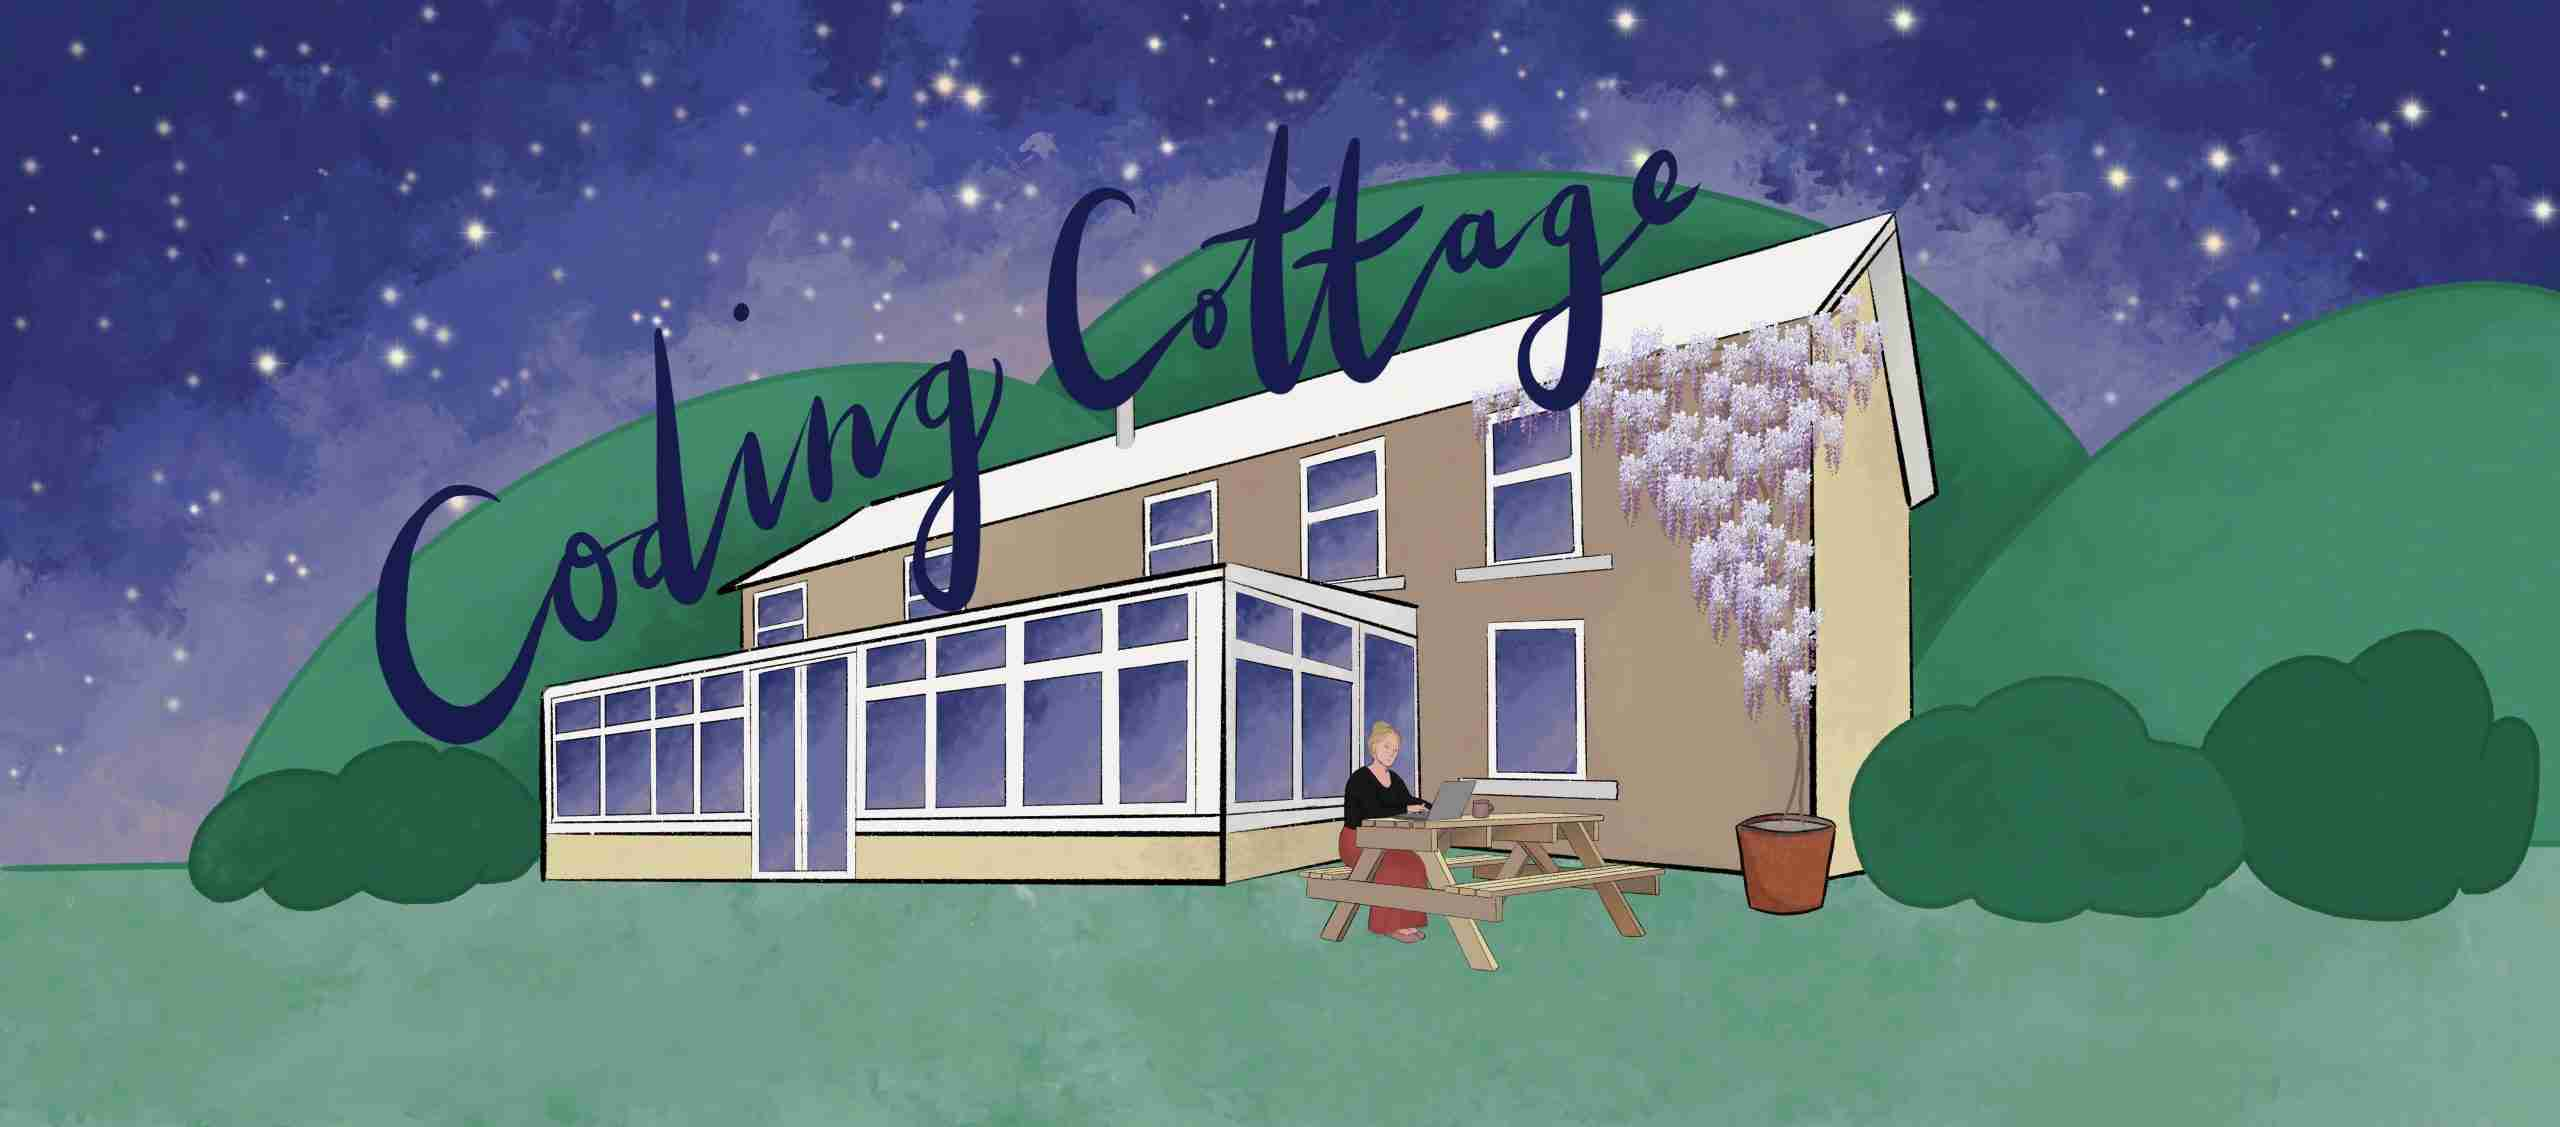 Coding Cottage Ltd